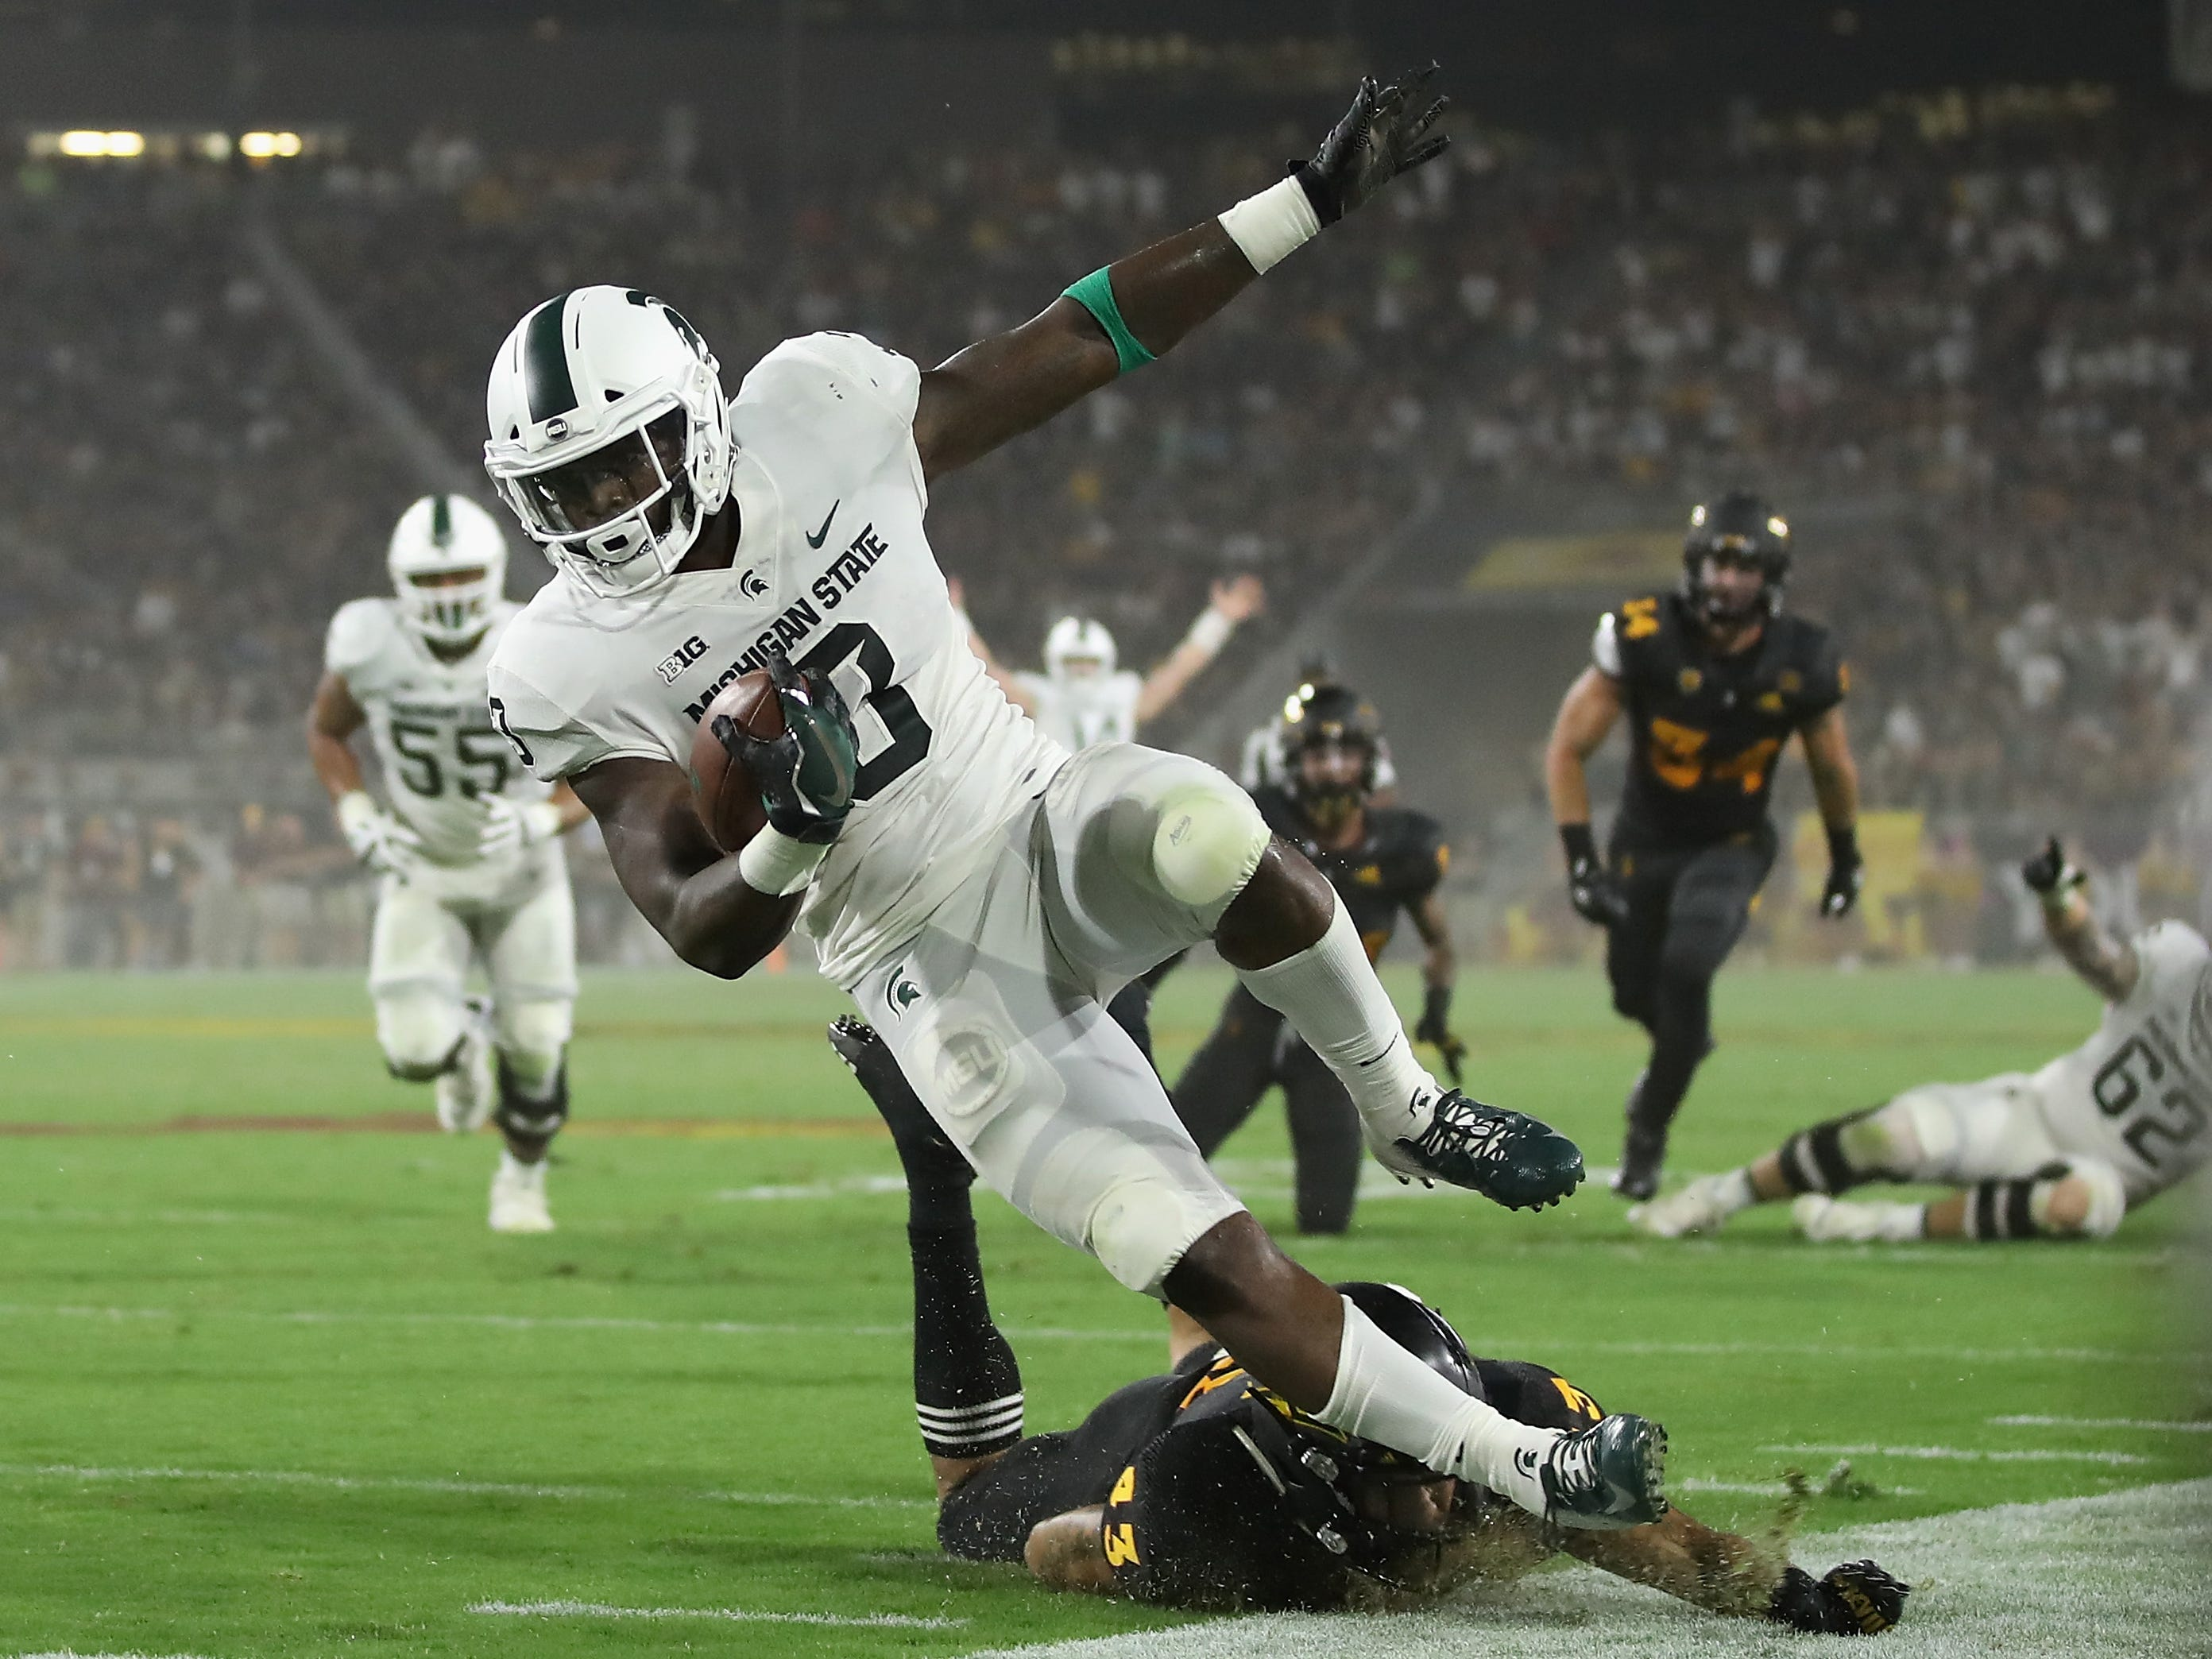 Running back LJ Scott #3 of the Michigan State Spartans is tackled after a reception against the Arizona State Sun Devils during the first half of the college football game at Sun Devil Stadium on September 8, 2018 in Tempe, Arizona.